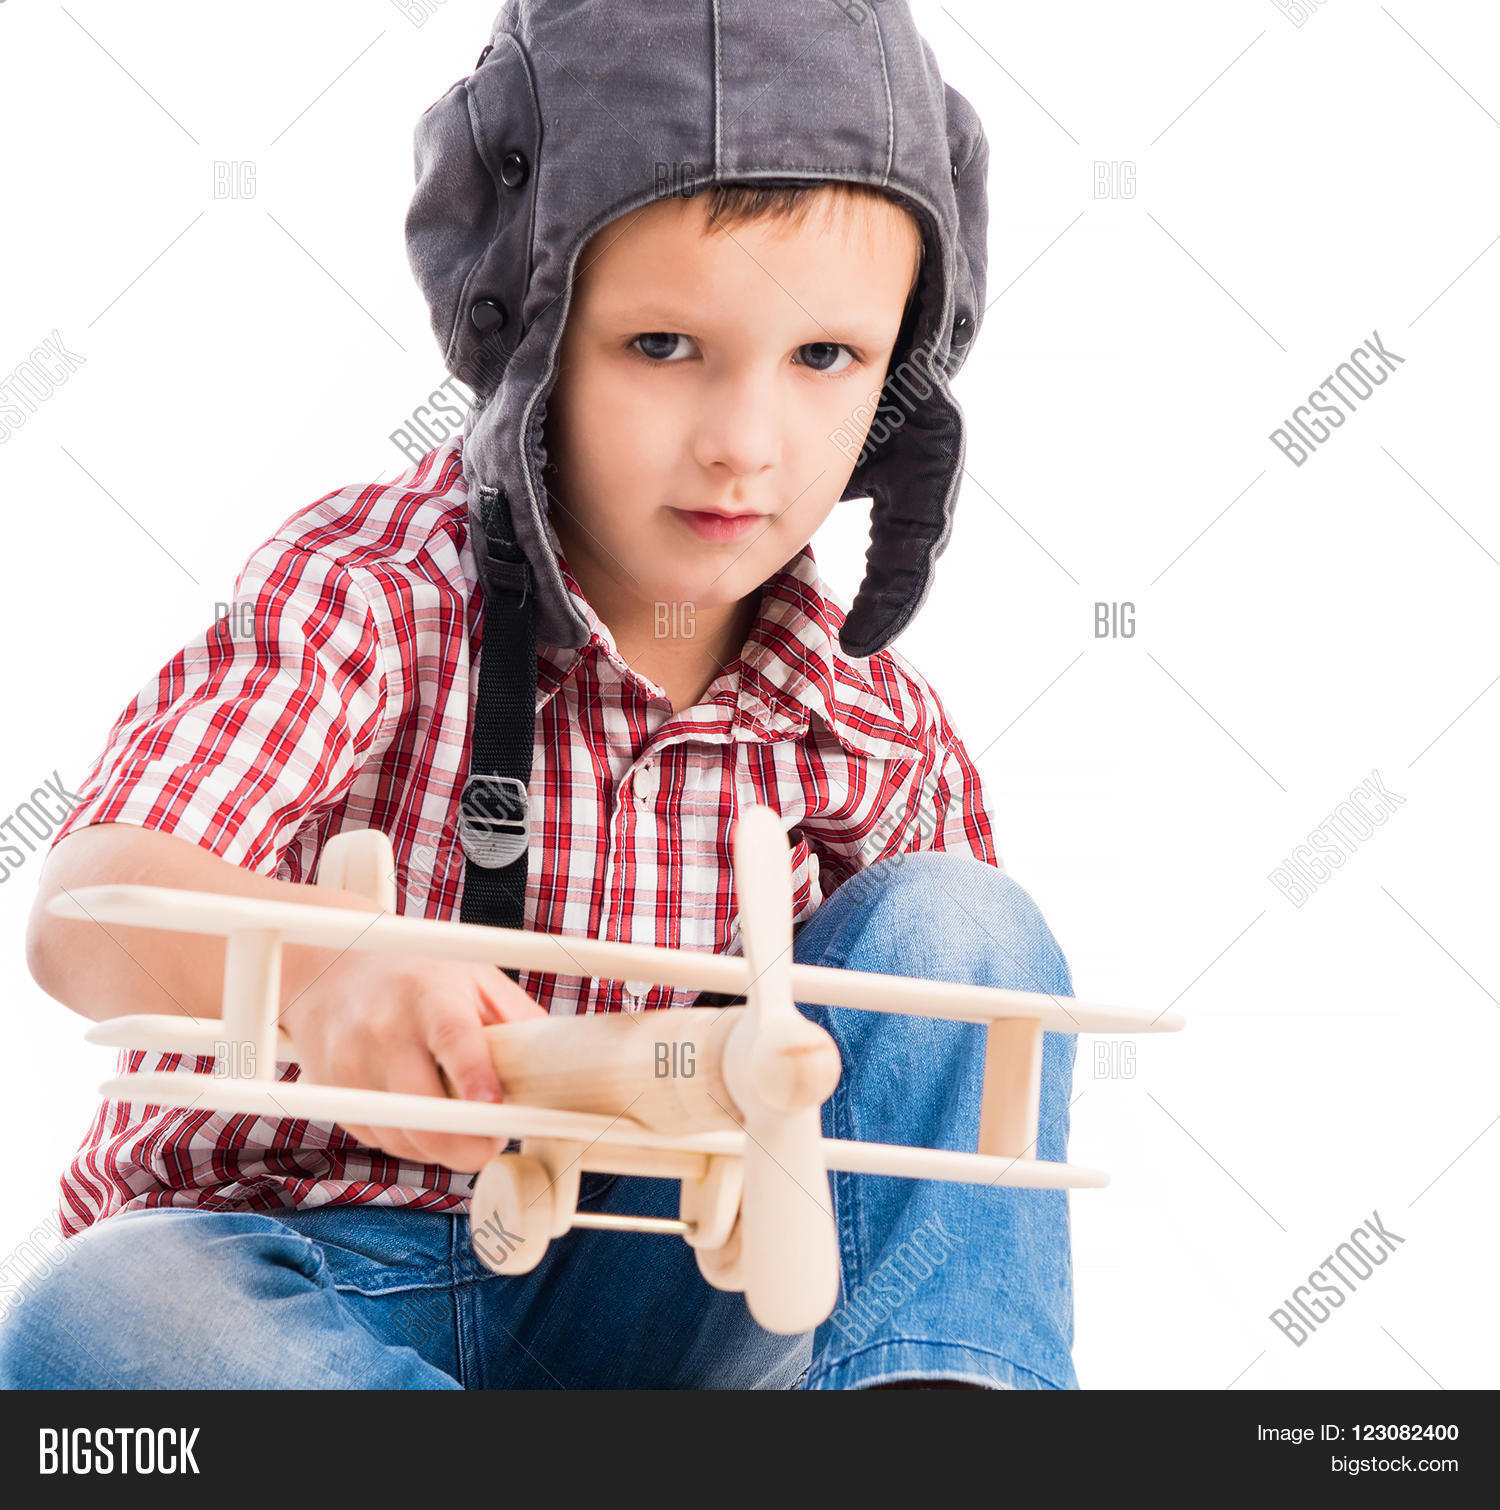 air,airman,airplane,aspirations,aviation,aviator,background,blue,boy,child,childhood,cute,dream,face,fantasy,flight,floor,fly,fun,guy,hand,handsome,happy,hat,helmet,imagination,isolated,kid,little,male,on,pilot,plane,play,sitting,smile,the,toy,toy-plane,white,wings,wooden,young